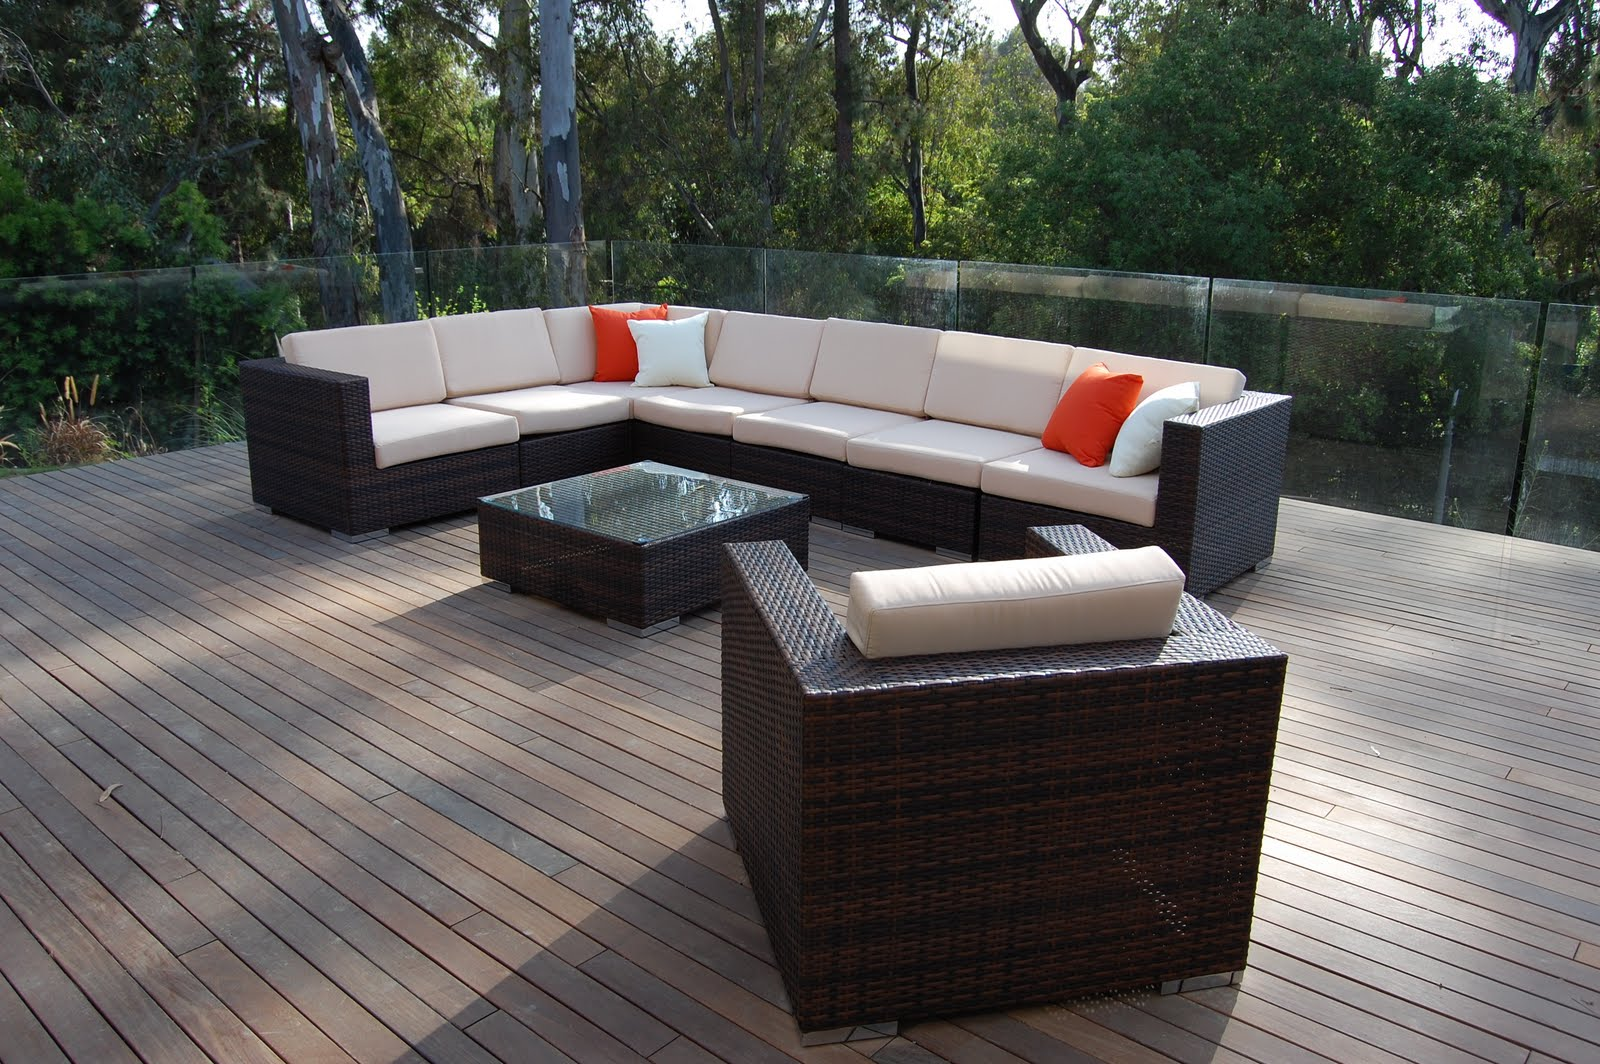 Unique Patio Furniture Unique Patio Furniture — Your Source for High Quality